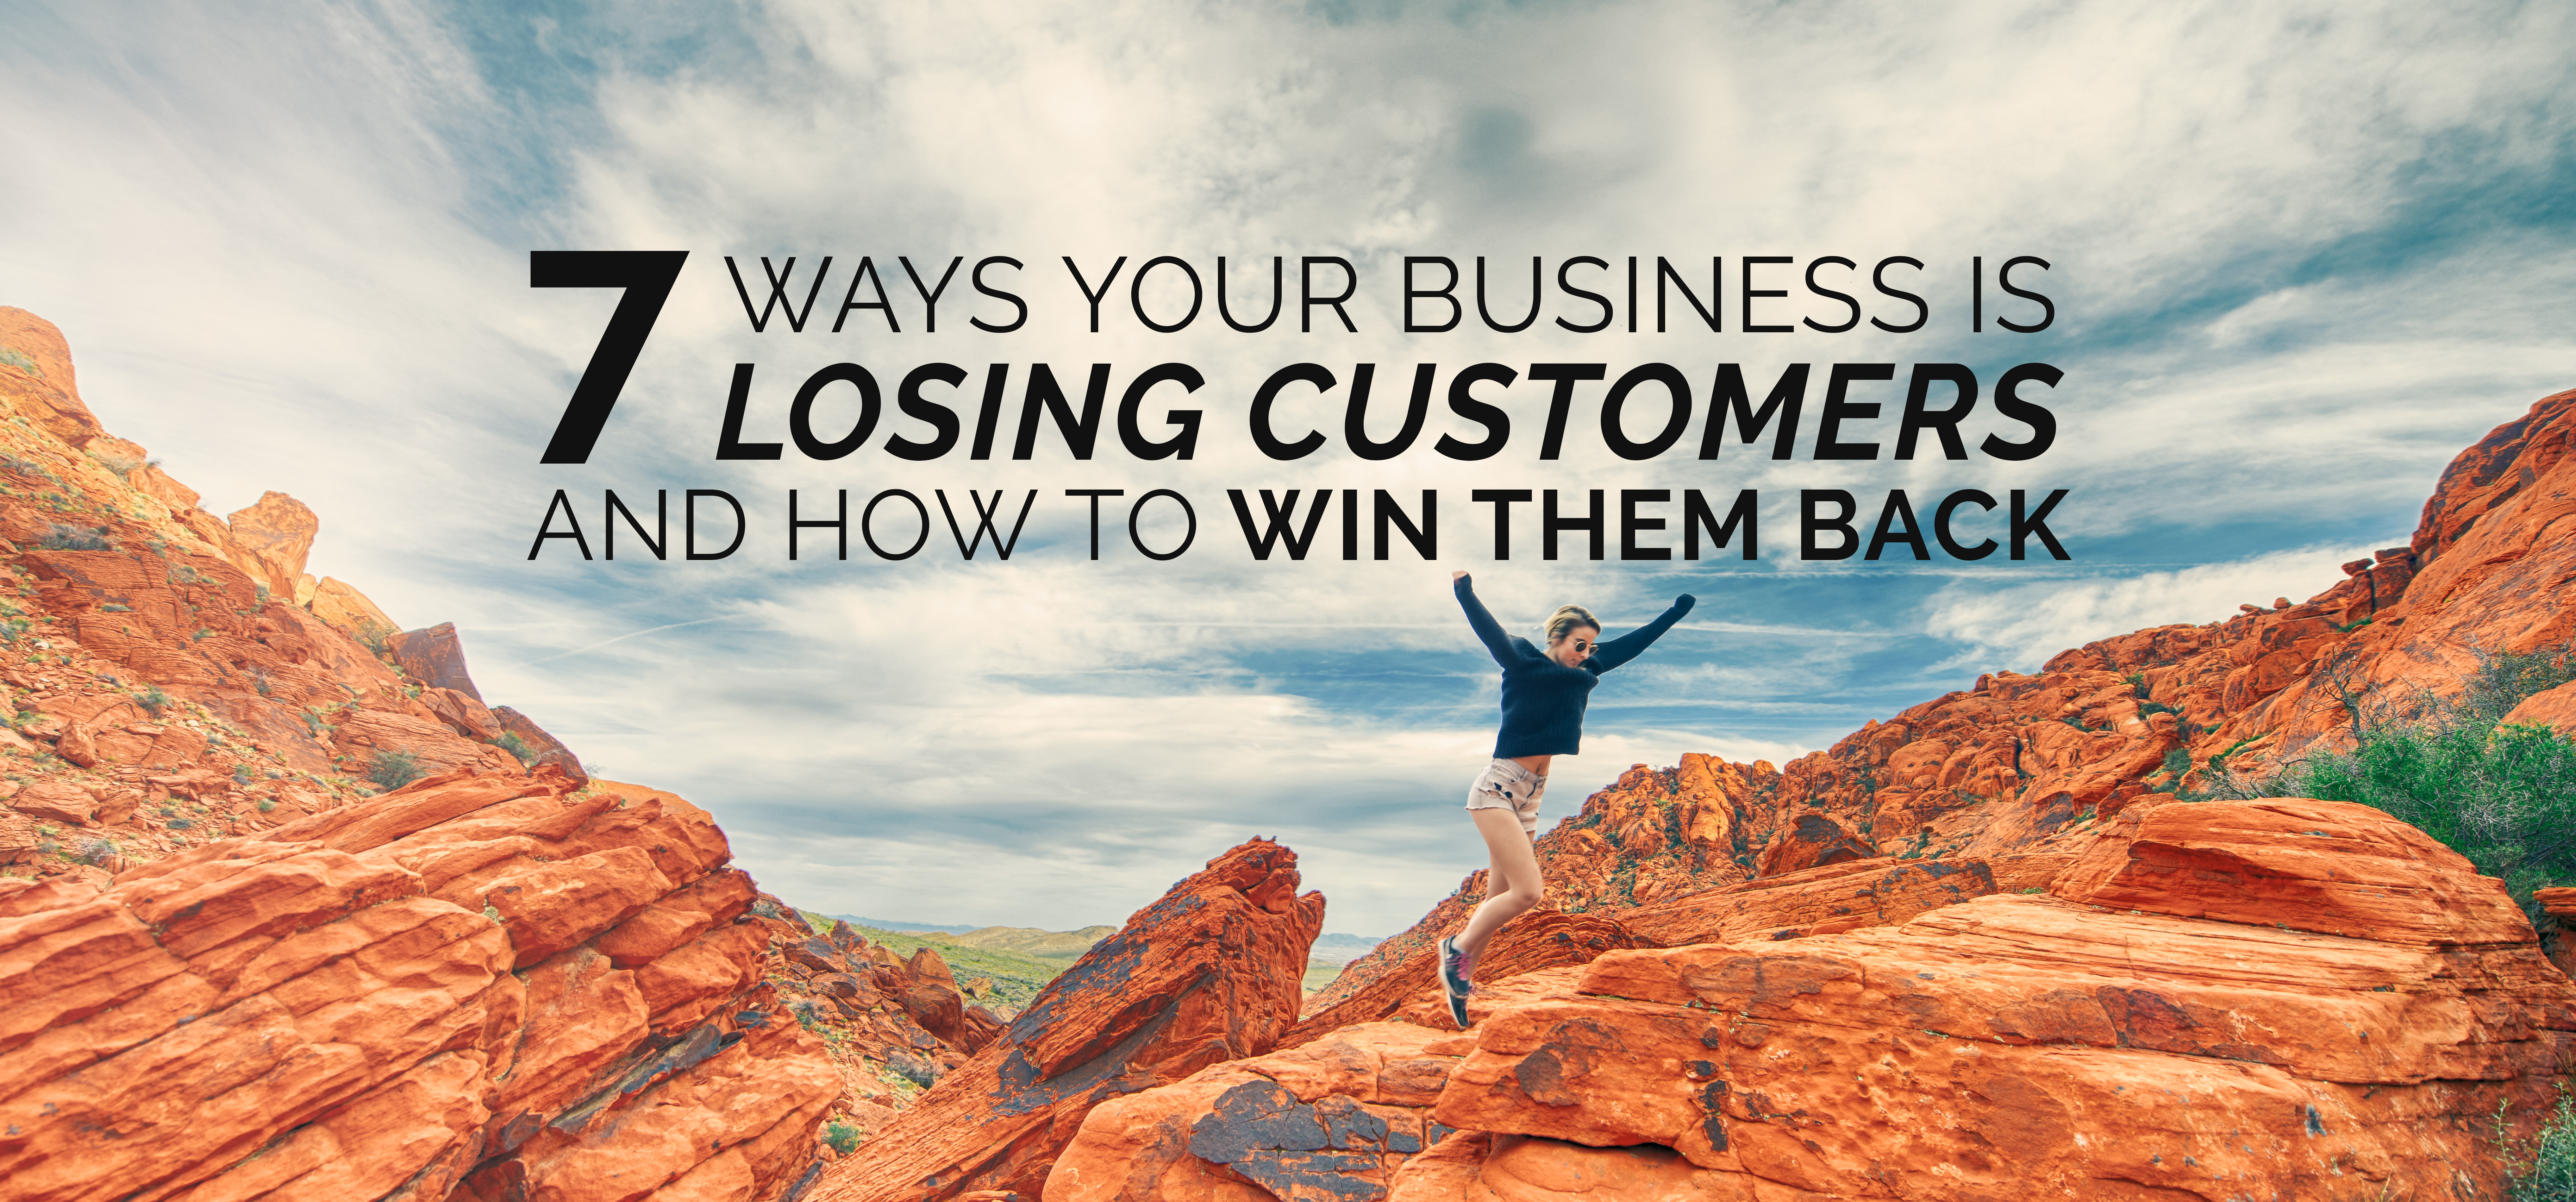 7 ways your business is losing customers and how to win them back